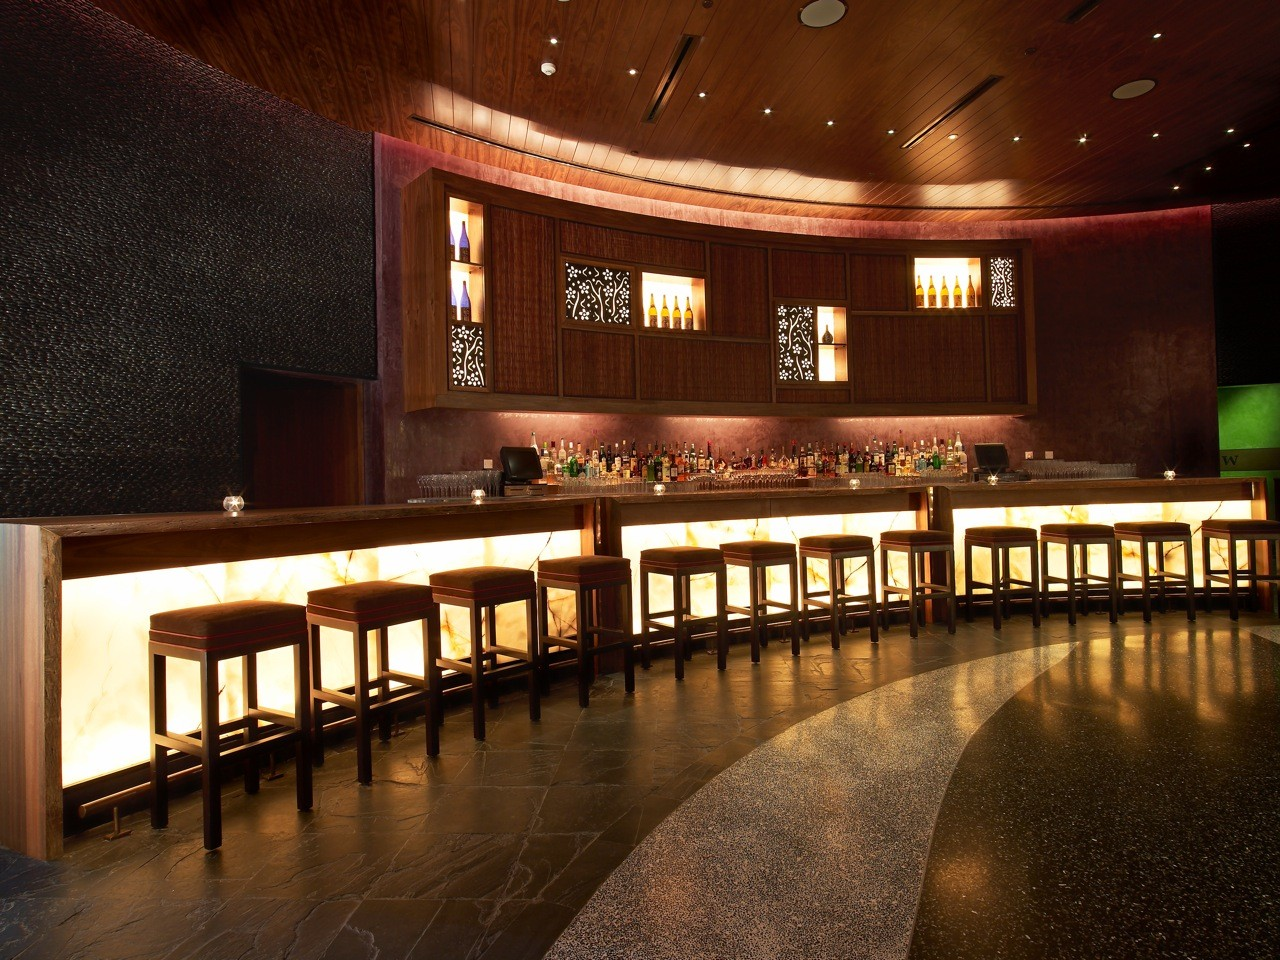 Nobu Dubai / Rockwell Group, Courtesy of  rockwell group